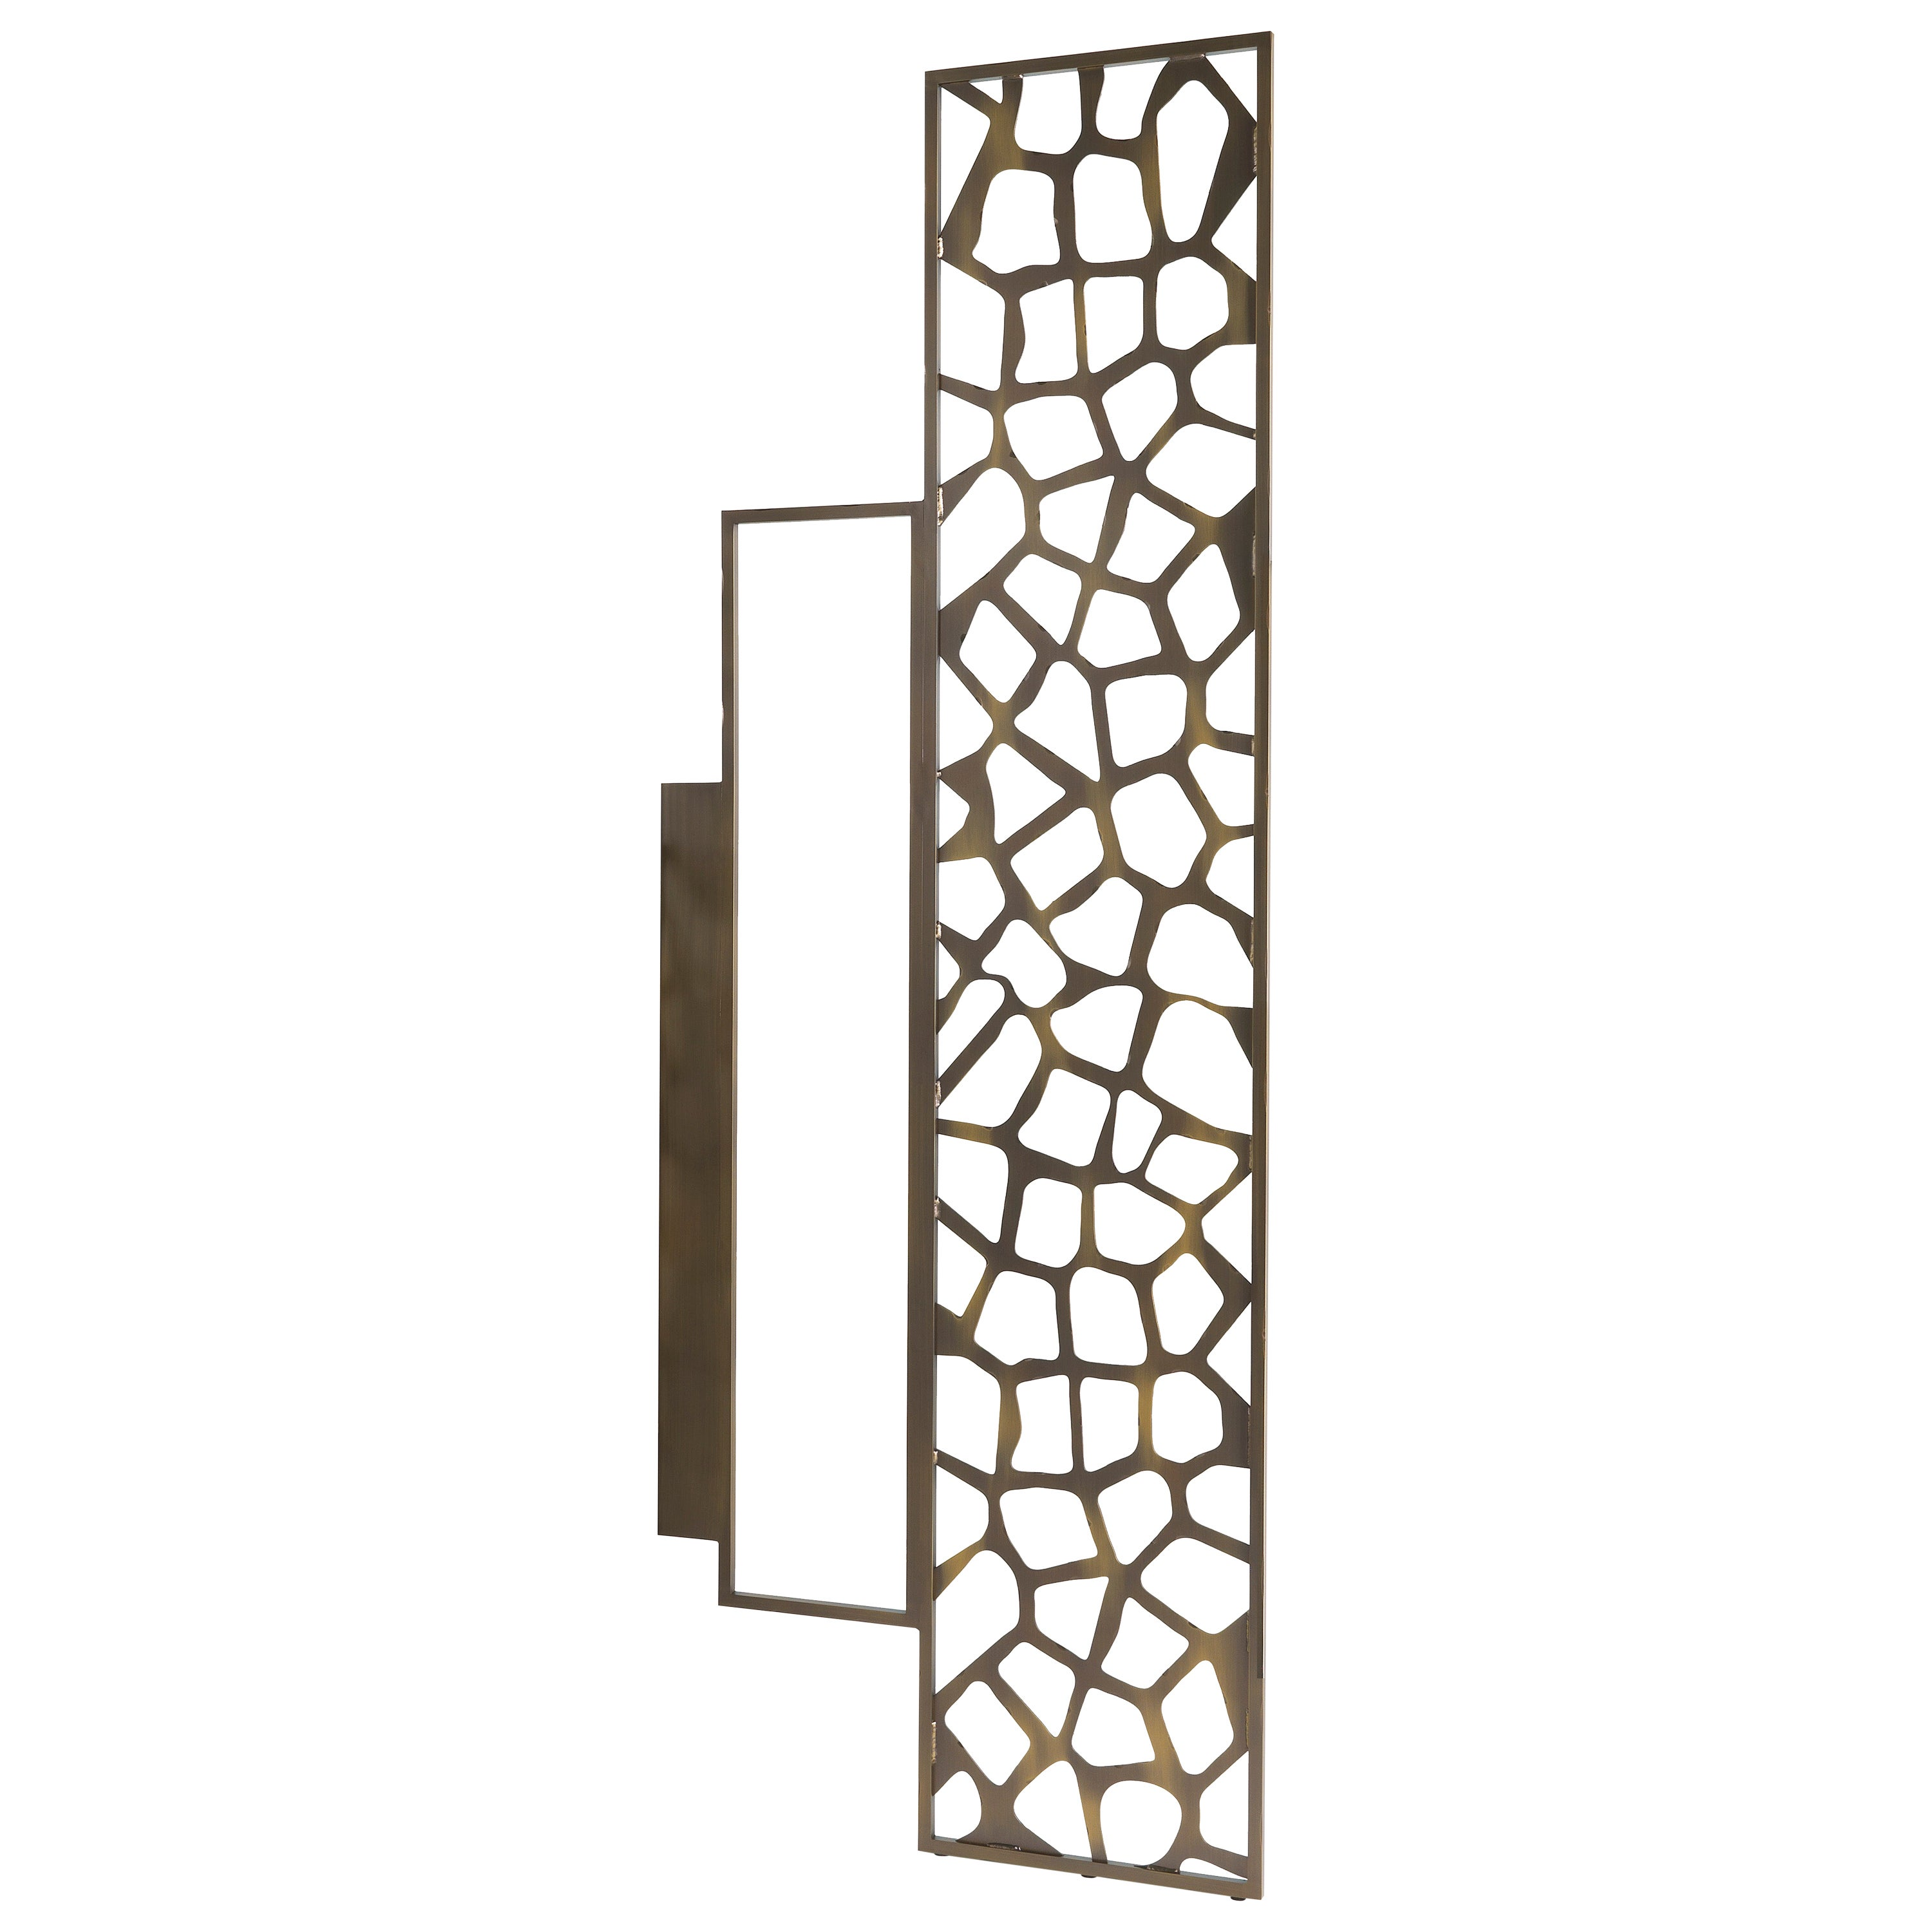 Uma Screen D in Bronze Finish by Roberto Cavalli Home Interiors